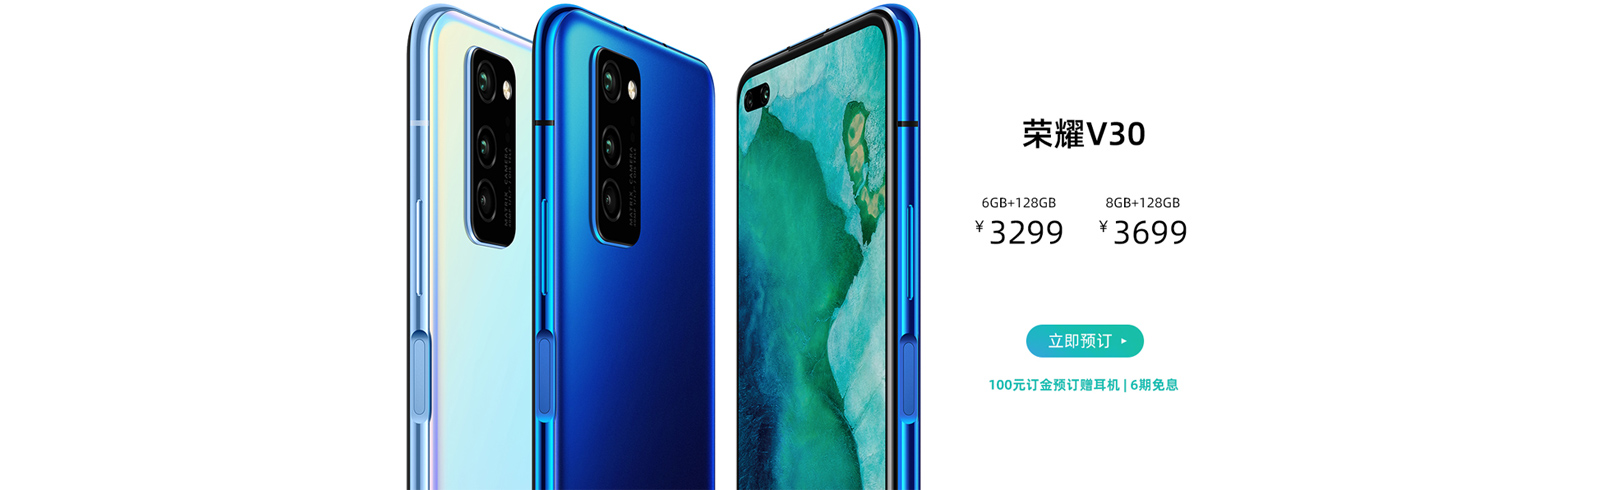 Huawei makes the Honor V30 and Honor V30 Pro official